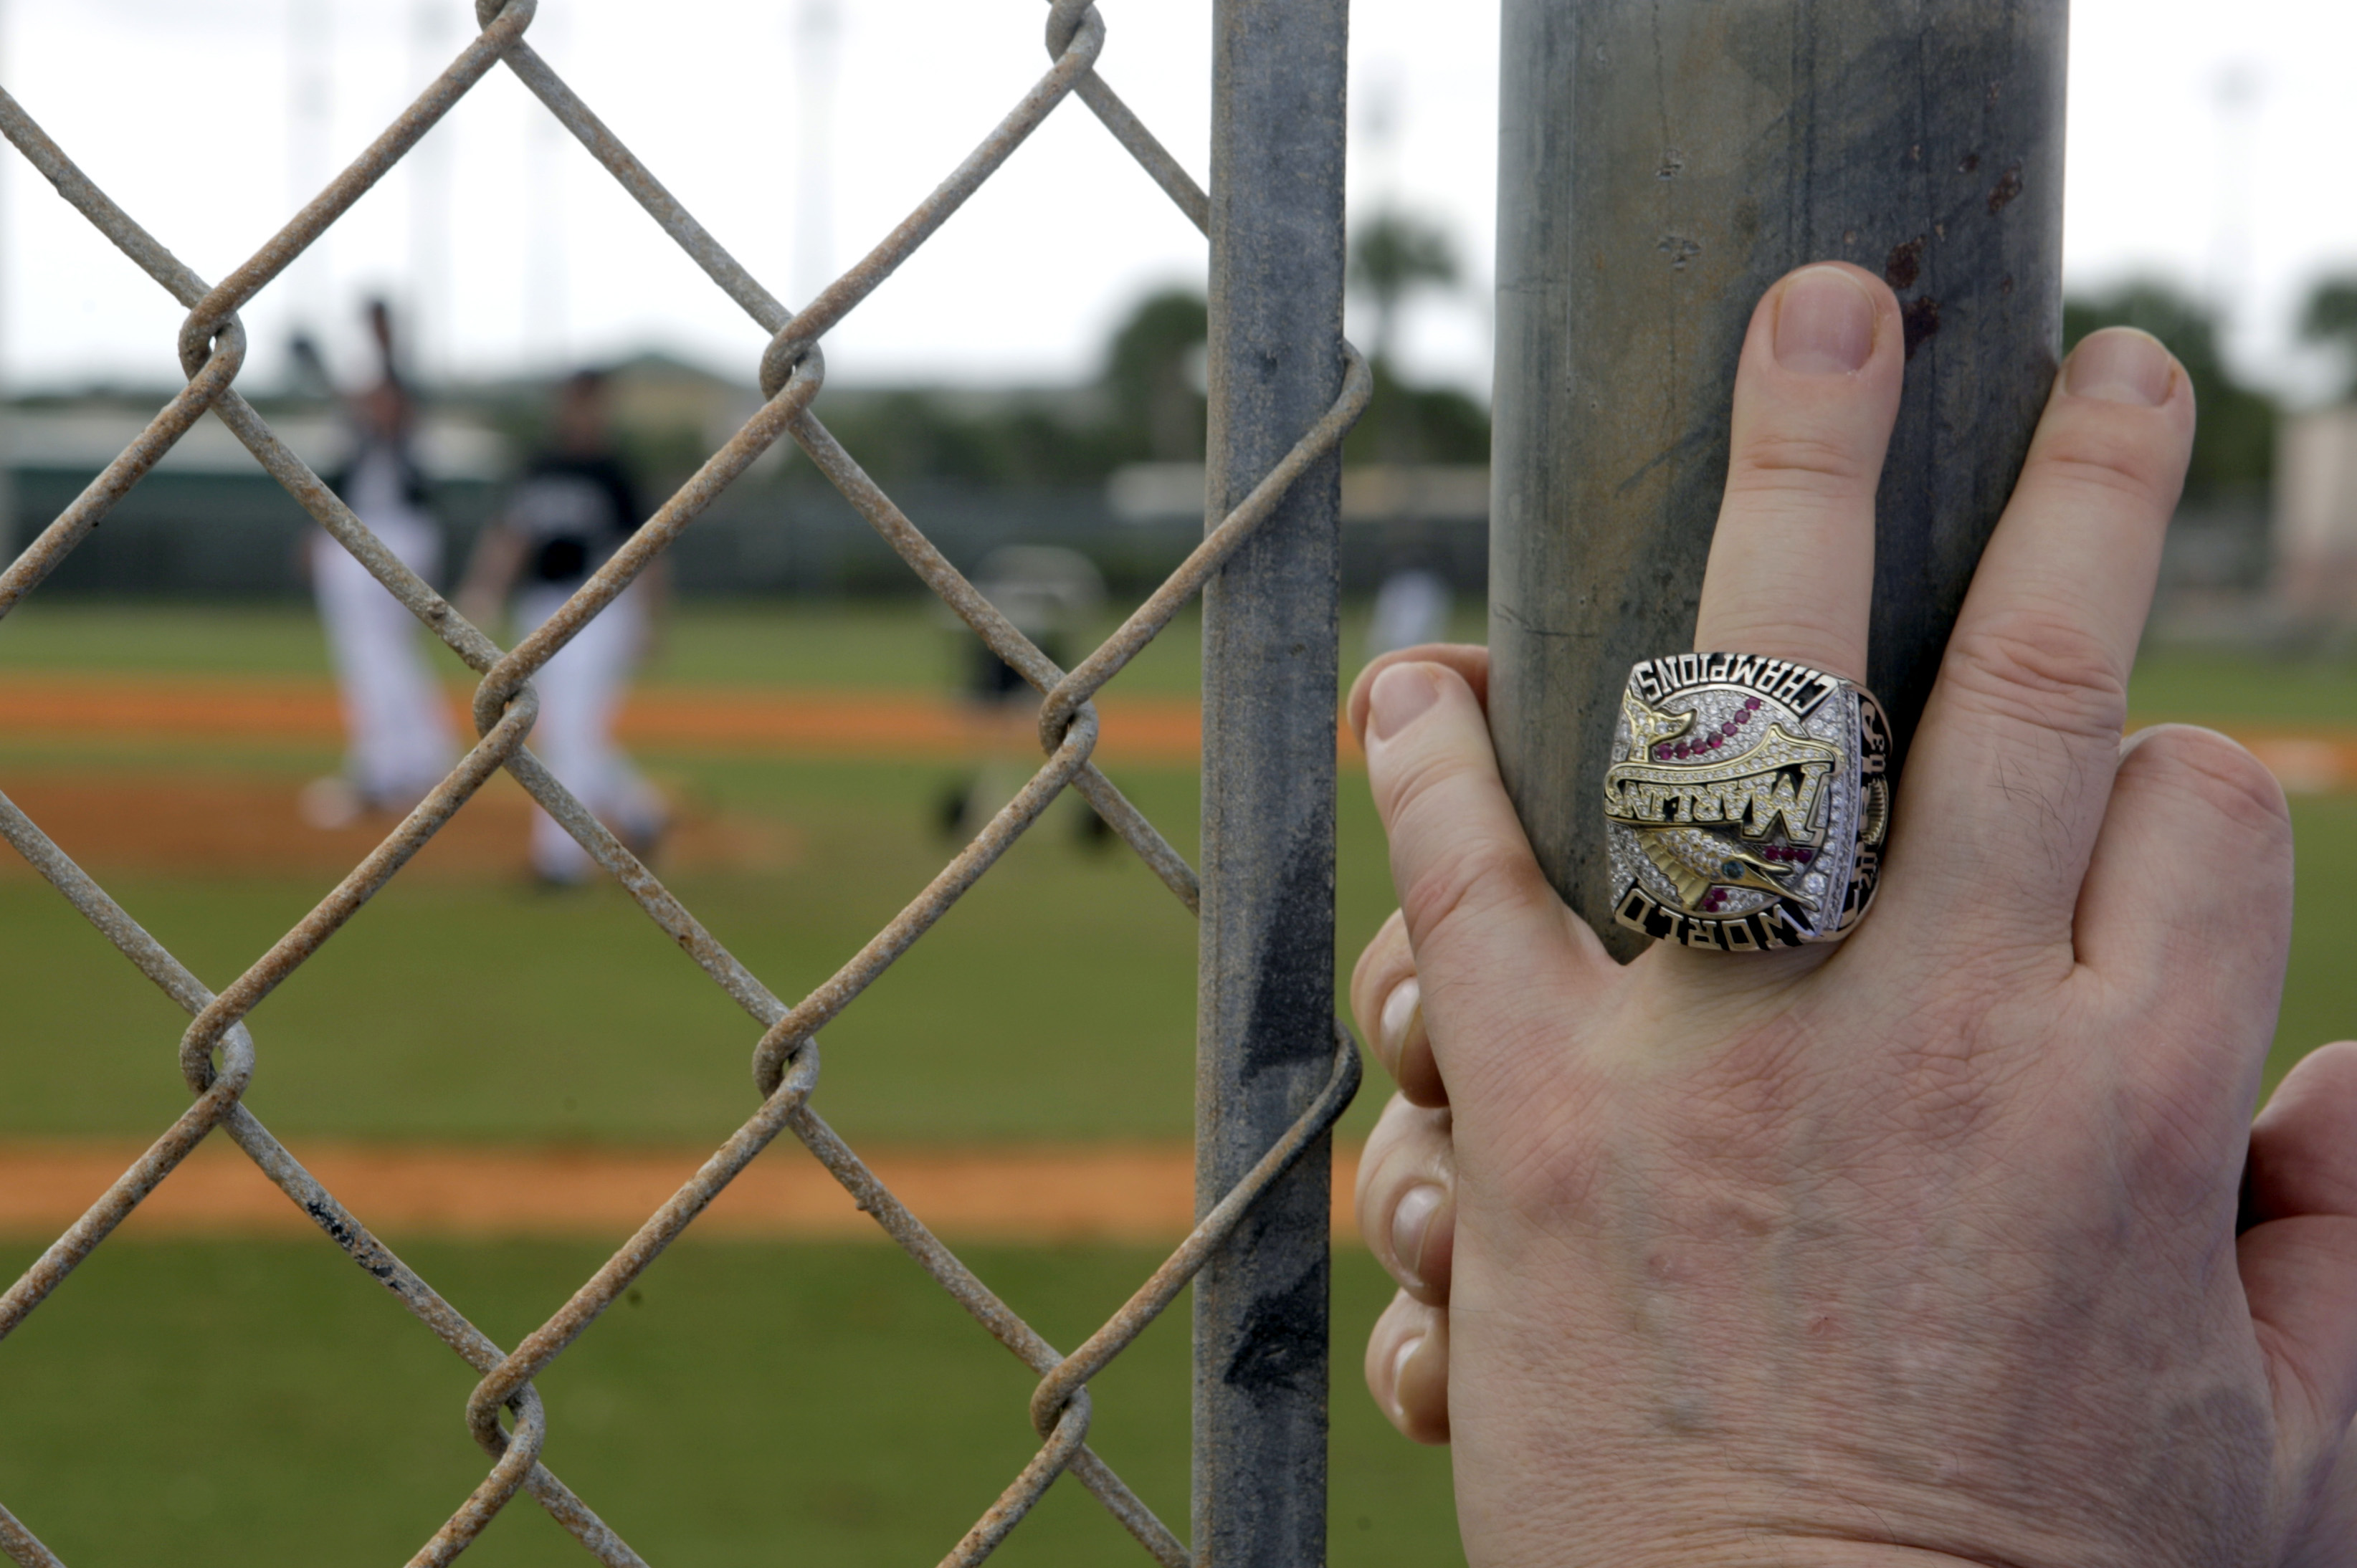 <div class='meta'><div class='origin-logo' data-origin='AP'></div><span class='caption-text' data-credit='AP Photo/Jeff Roberson'>Wearing his World Series ring, Florida Marlins owner Jeffrey Loria leans against a fence as he watches his team work out during spring training baseball Wednesday, Feb. 24, 2010.</span></div>